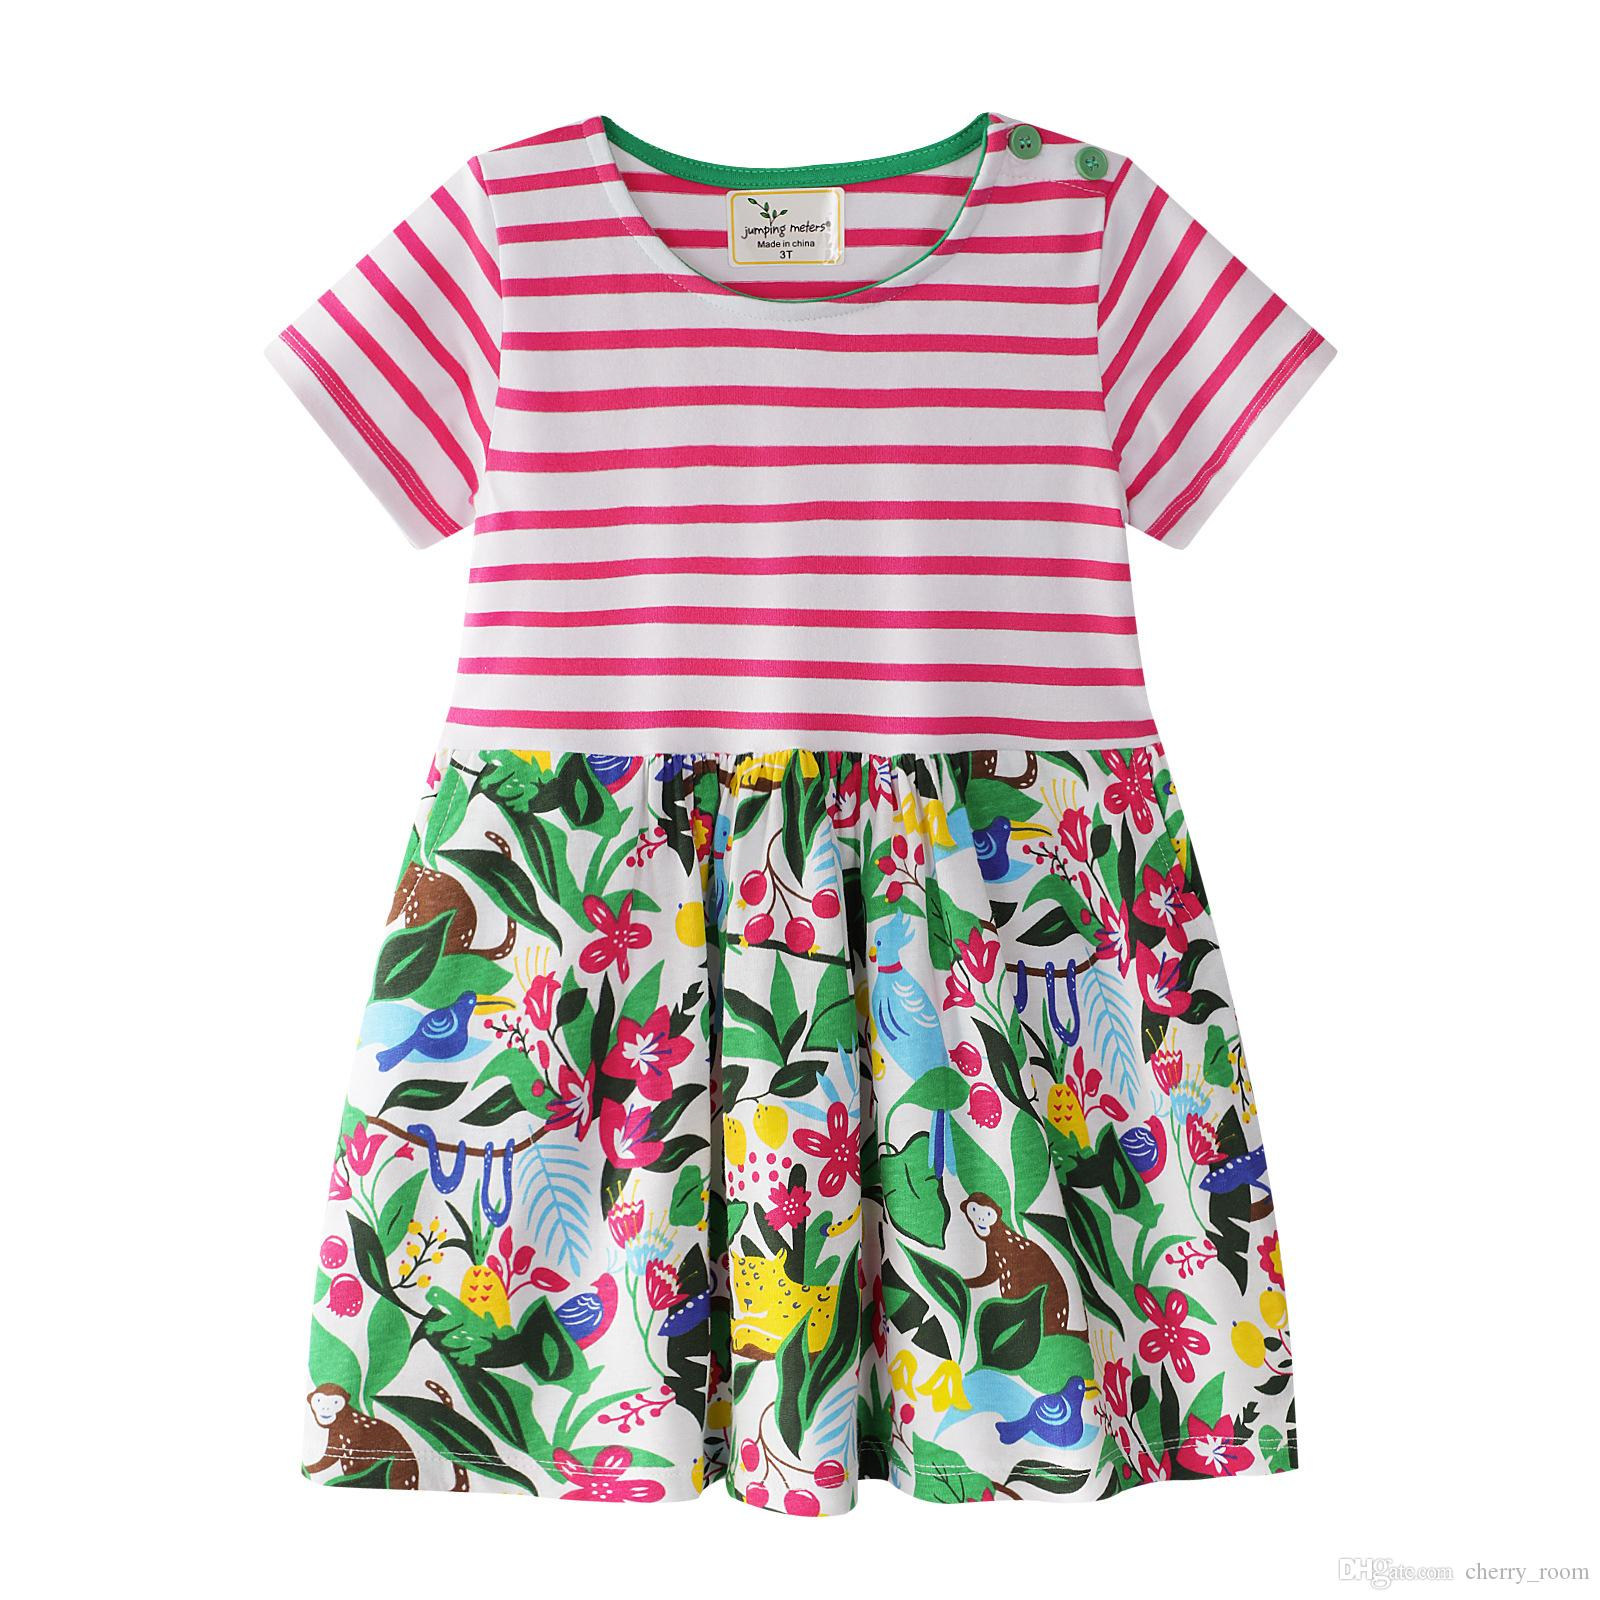 bbd3585cdd2 Princess Dress Animals Printed Girl Jersey Dresses 2018 Children Summer  Clothing For Girls Outwear Short Sleeve Stripe Cotton Dress A8629 Canada  2019 From ...